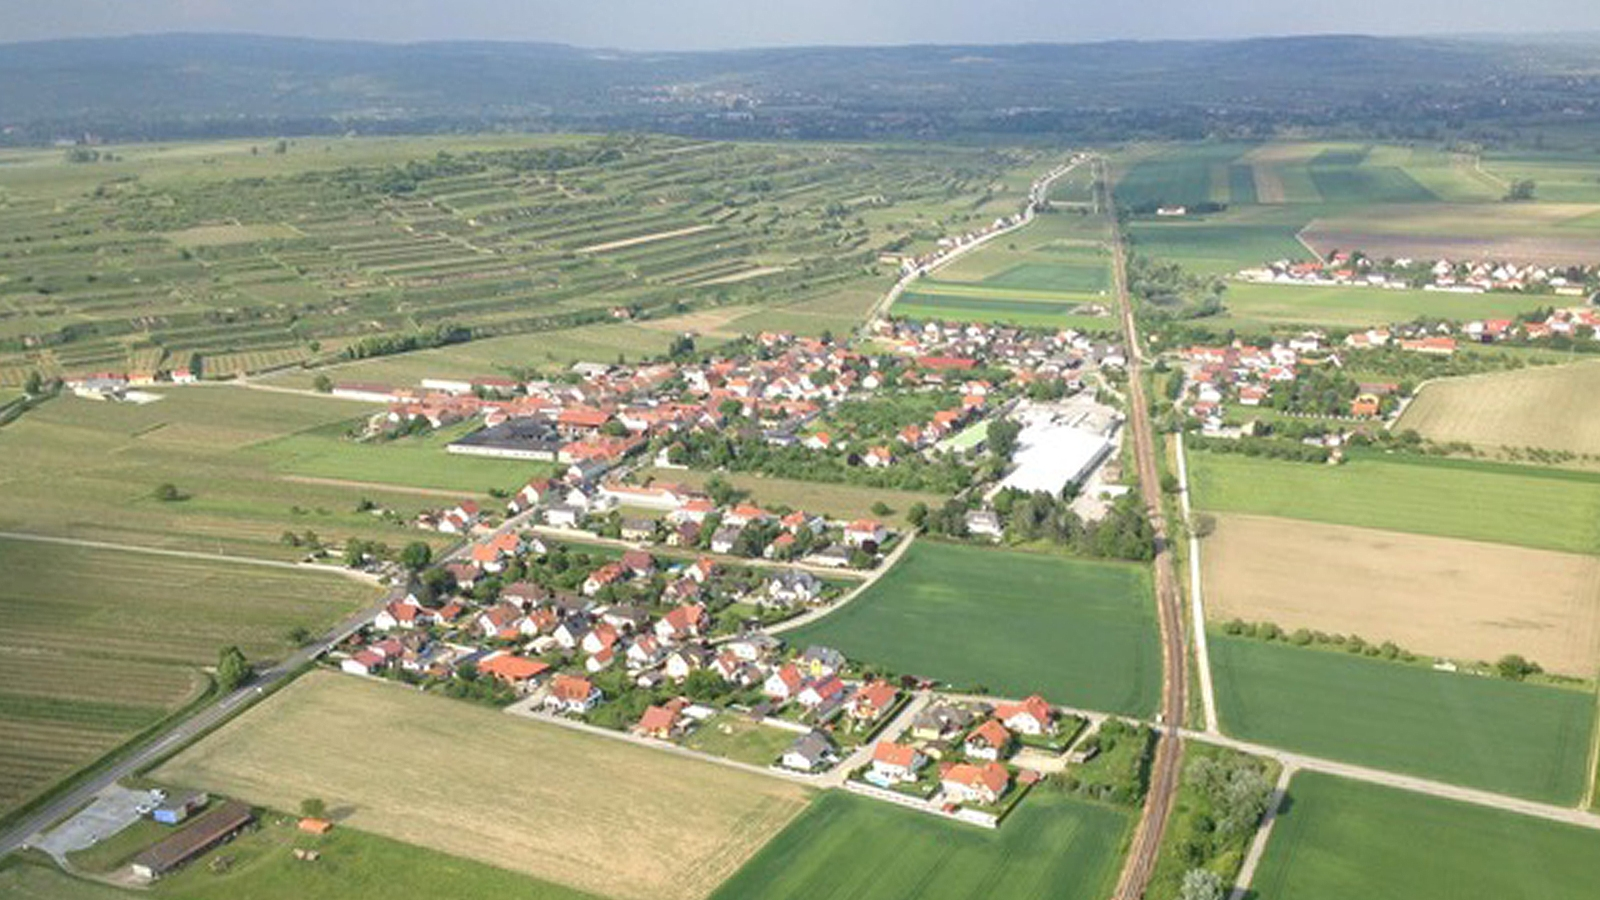 Gedersdorf in Lower Austria